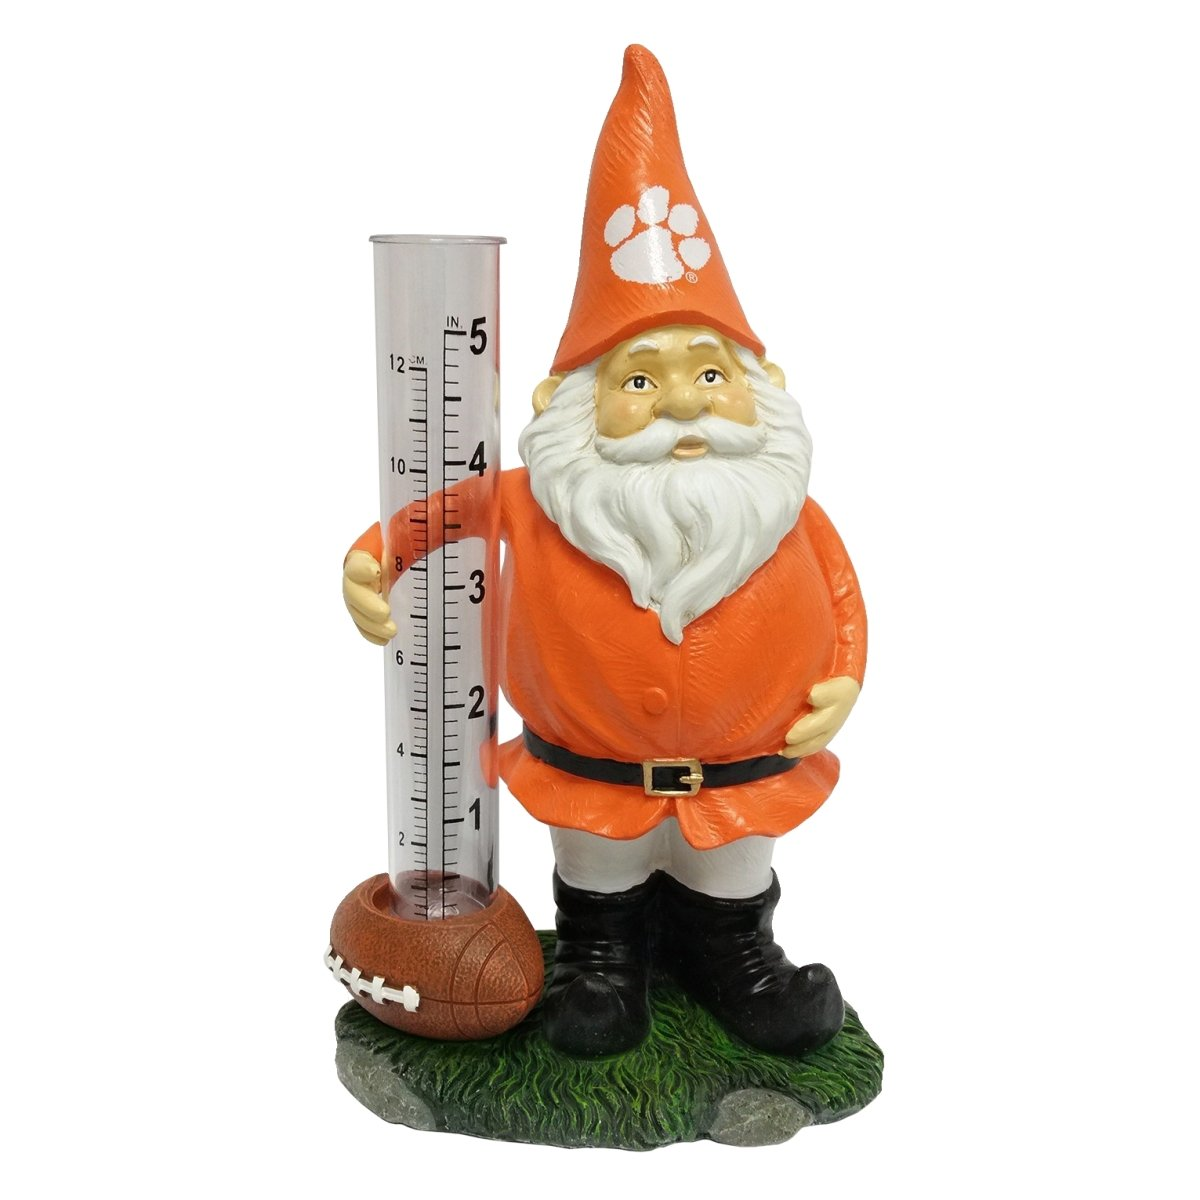 "8"" Resin Gnome Rain Gauge - Mr. Knickerbocker"